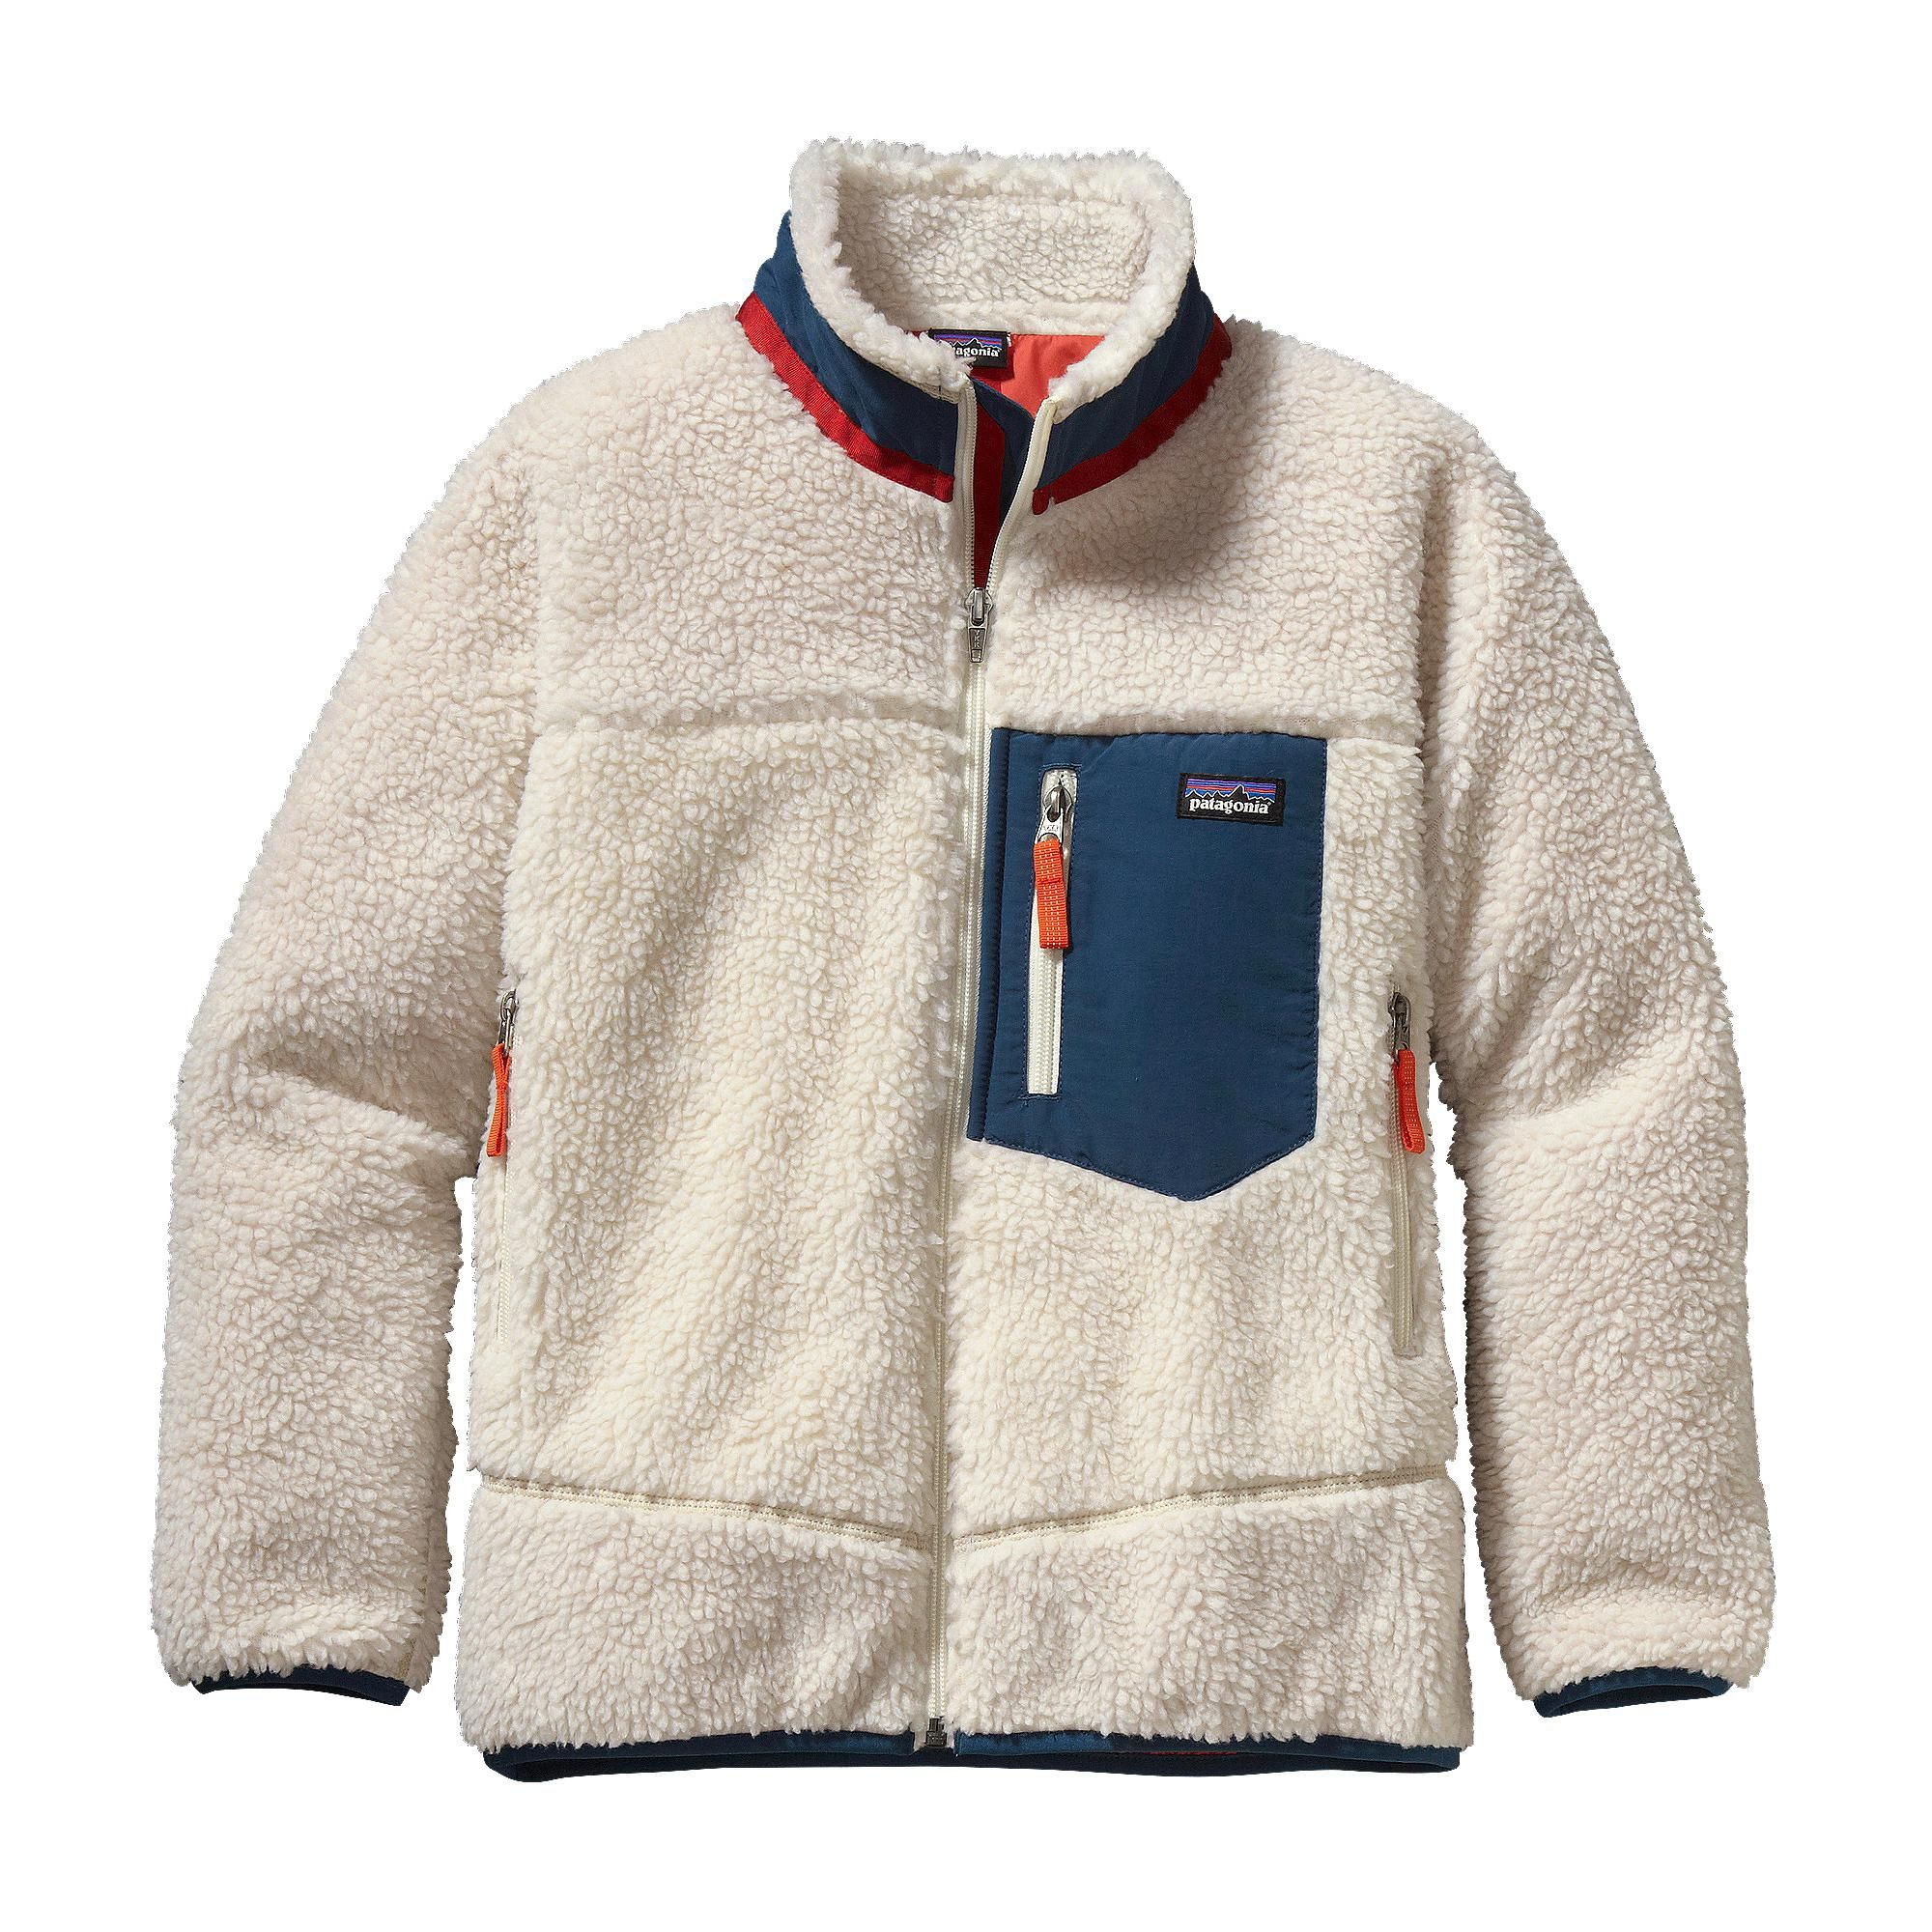 Kids' Retro-X® Fleece Jacket | Patagonia kids and Patagonia